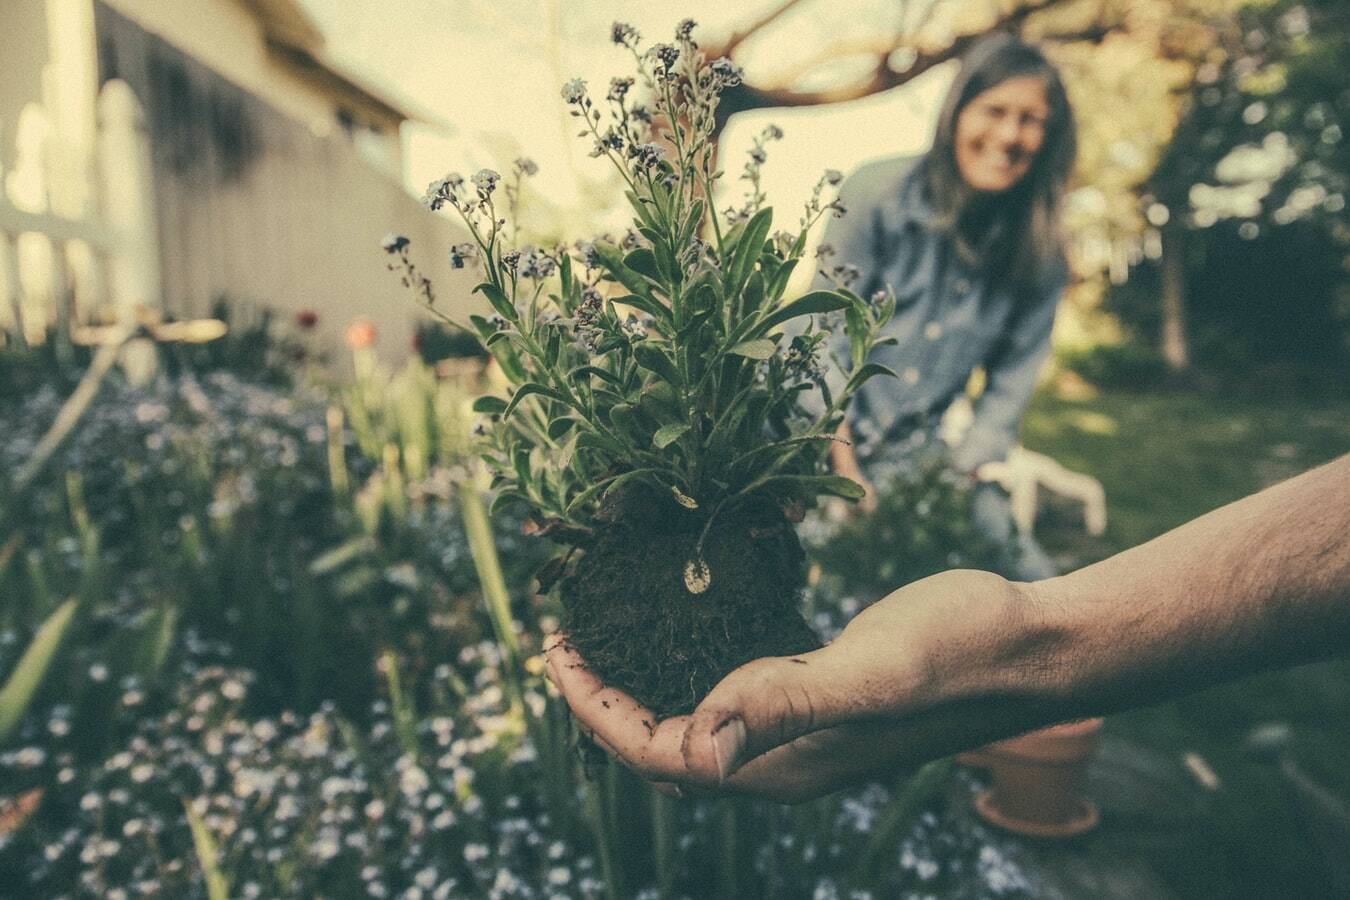 Pennies Help Gardens Against Bugs - Facts About Money